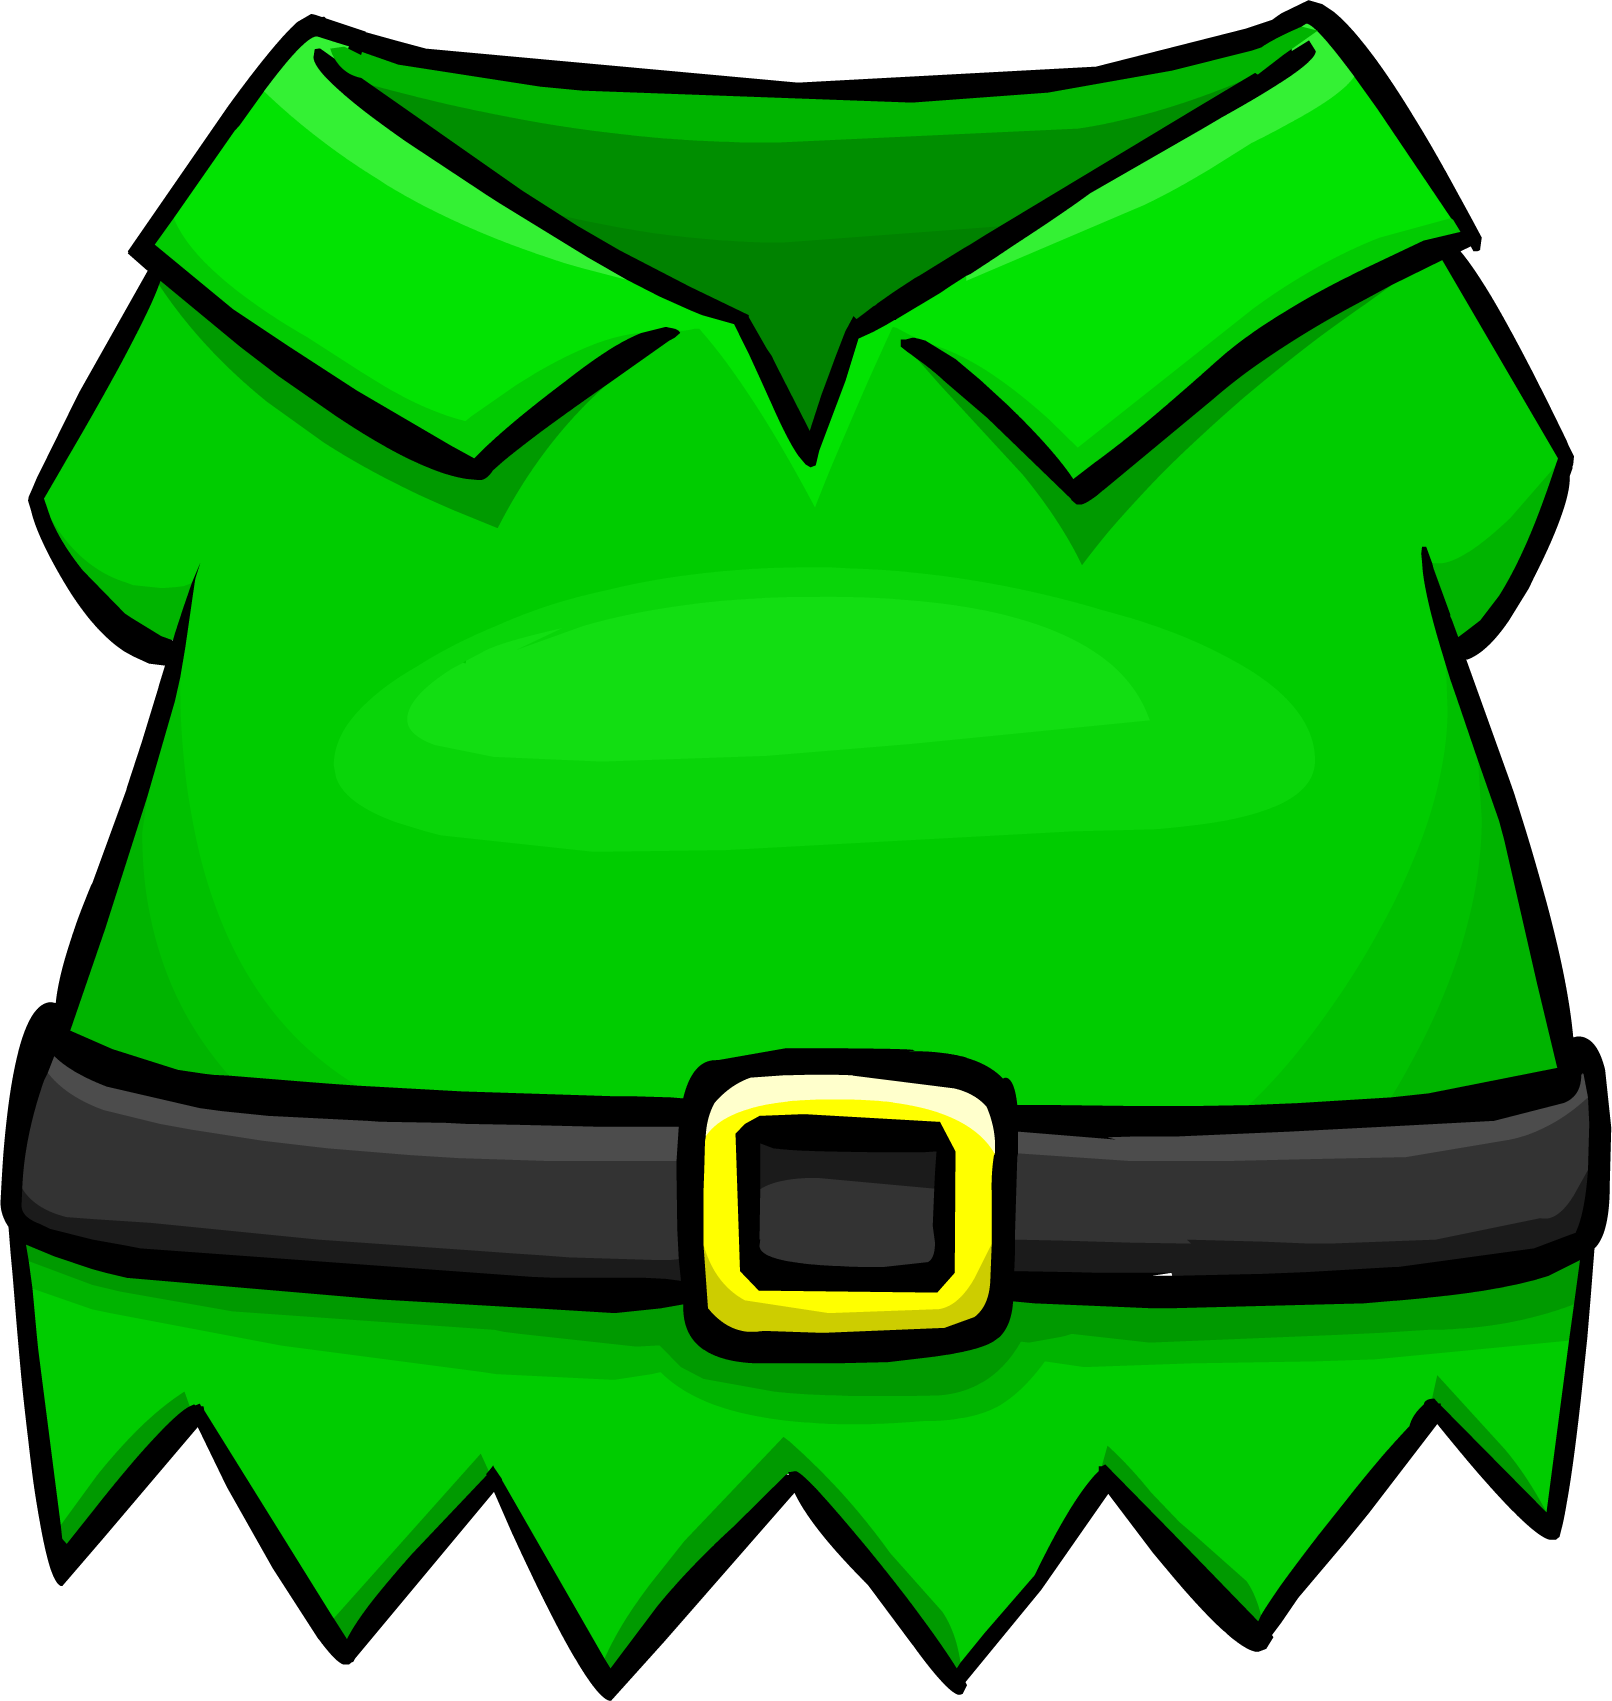 Elf clipart clothing, Elf clothing Transparent FREE for.